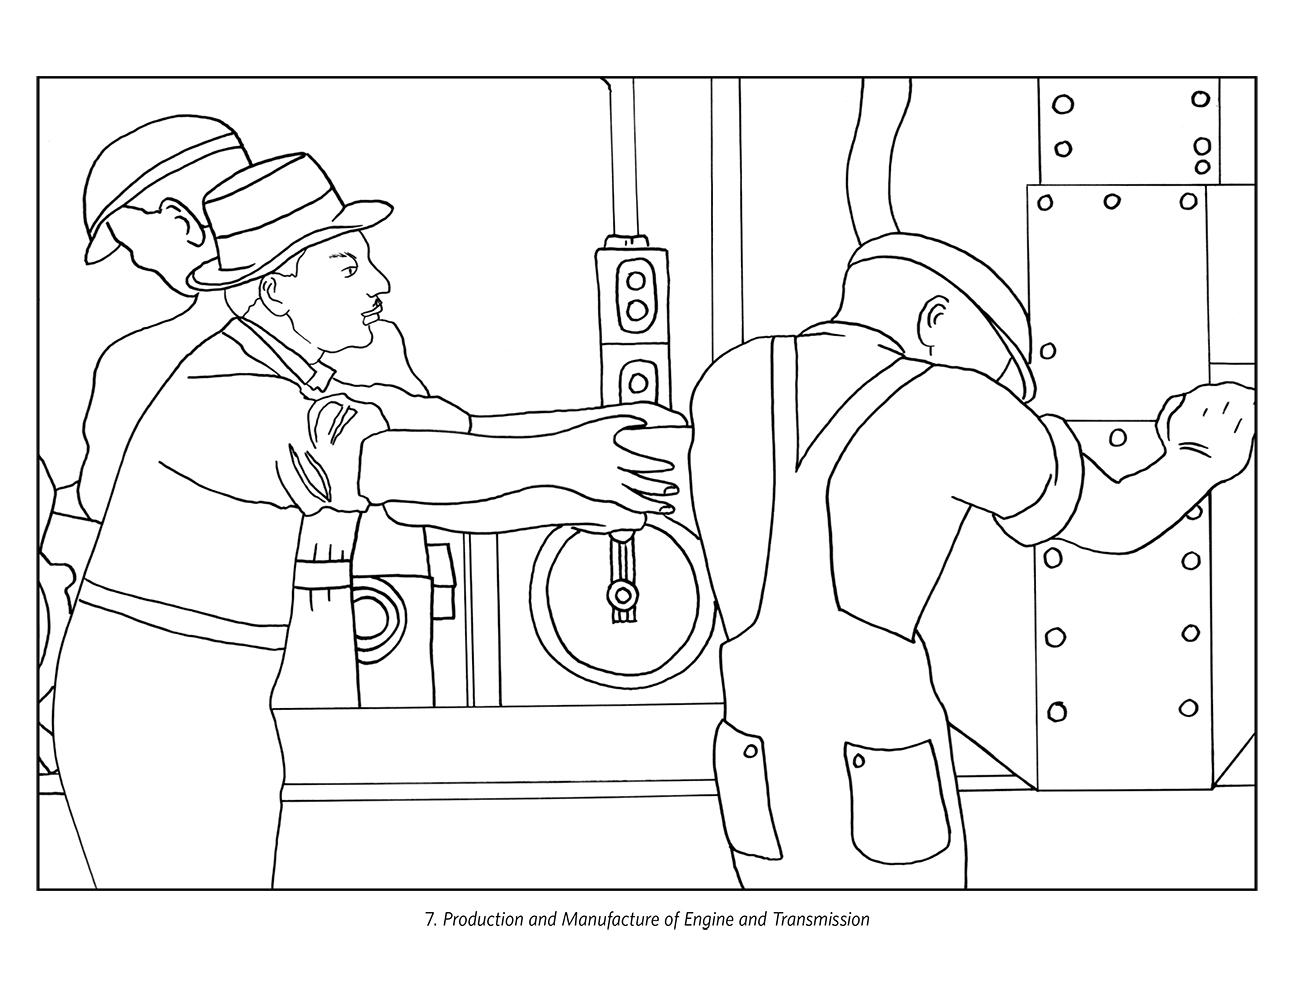 factory worker coloring pages - photo#4